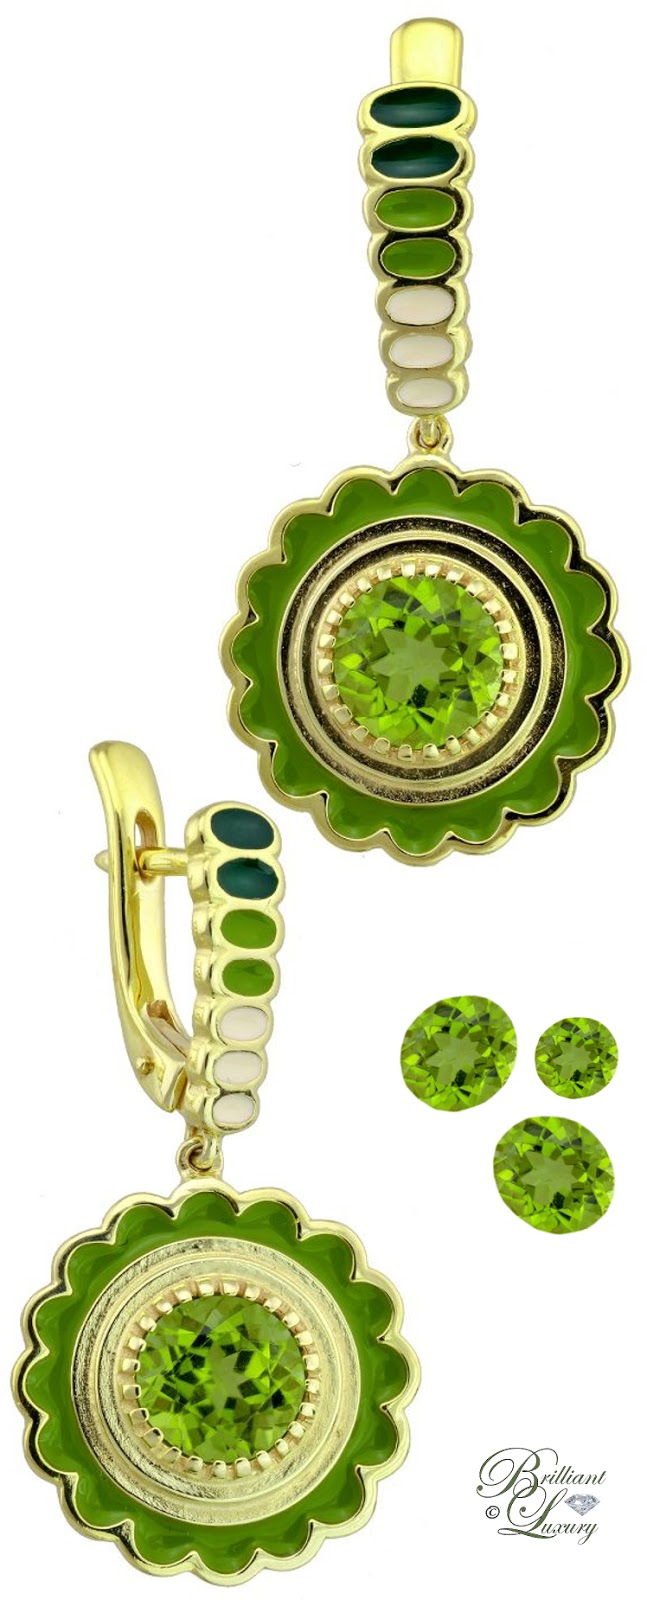 Brilliant Luxury ♦ Drukker Designs Peridot Earrings